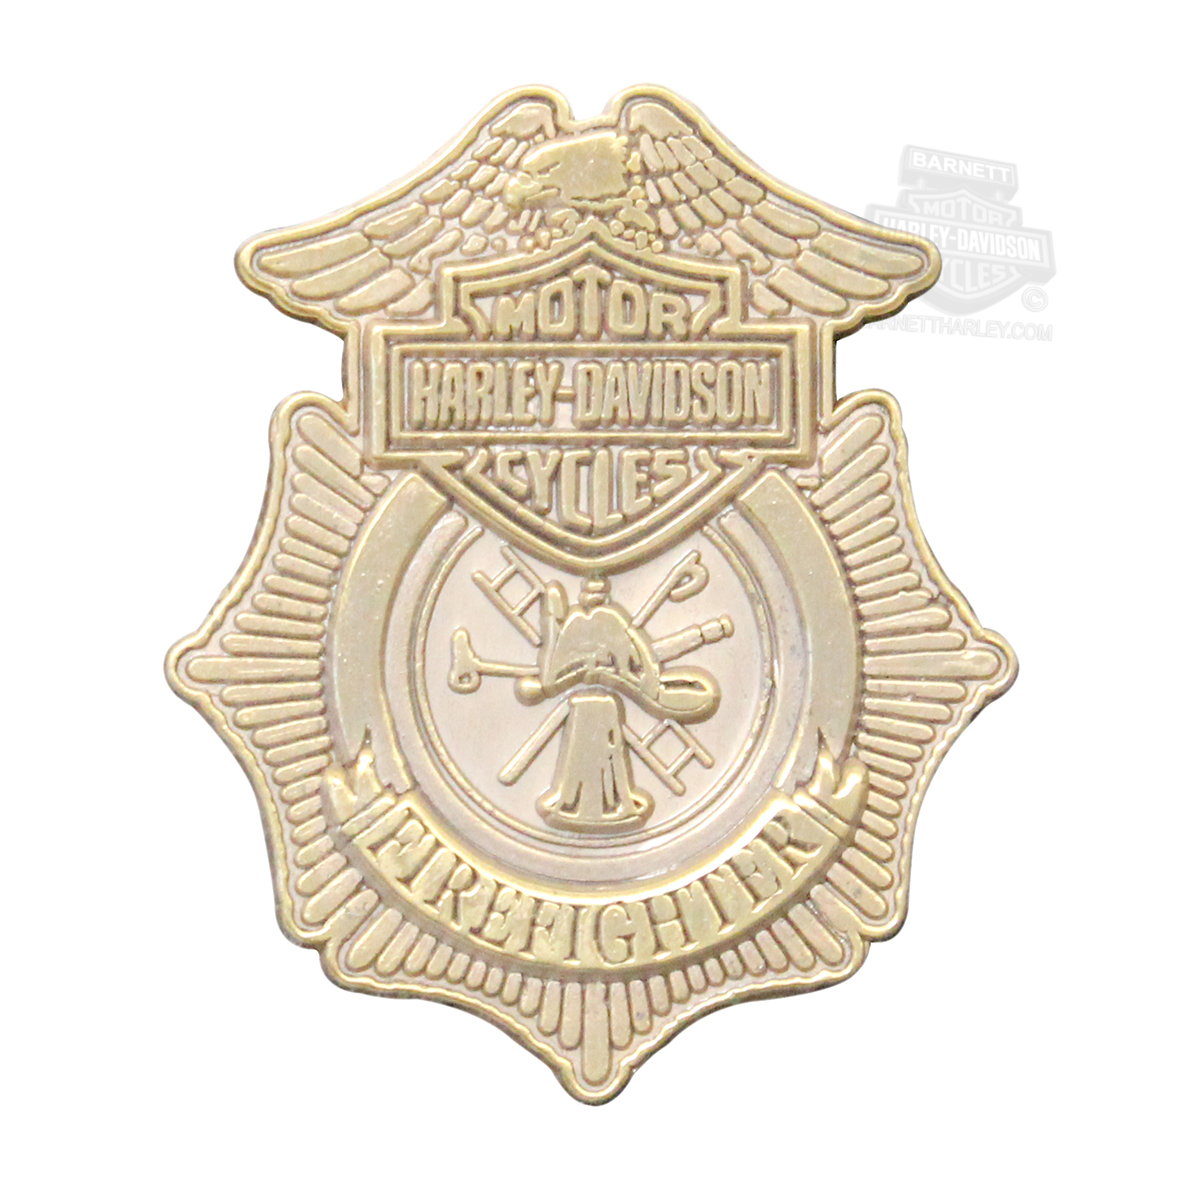 Harley-Davidson® Firefighter Original 3D Pin